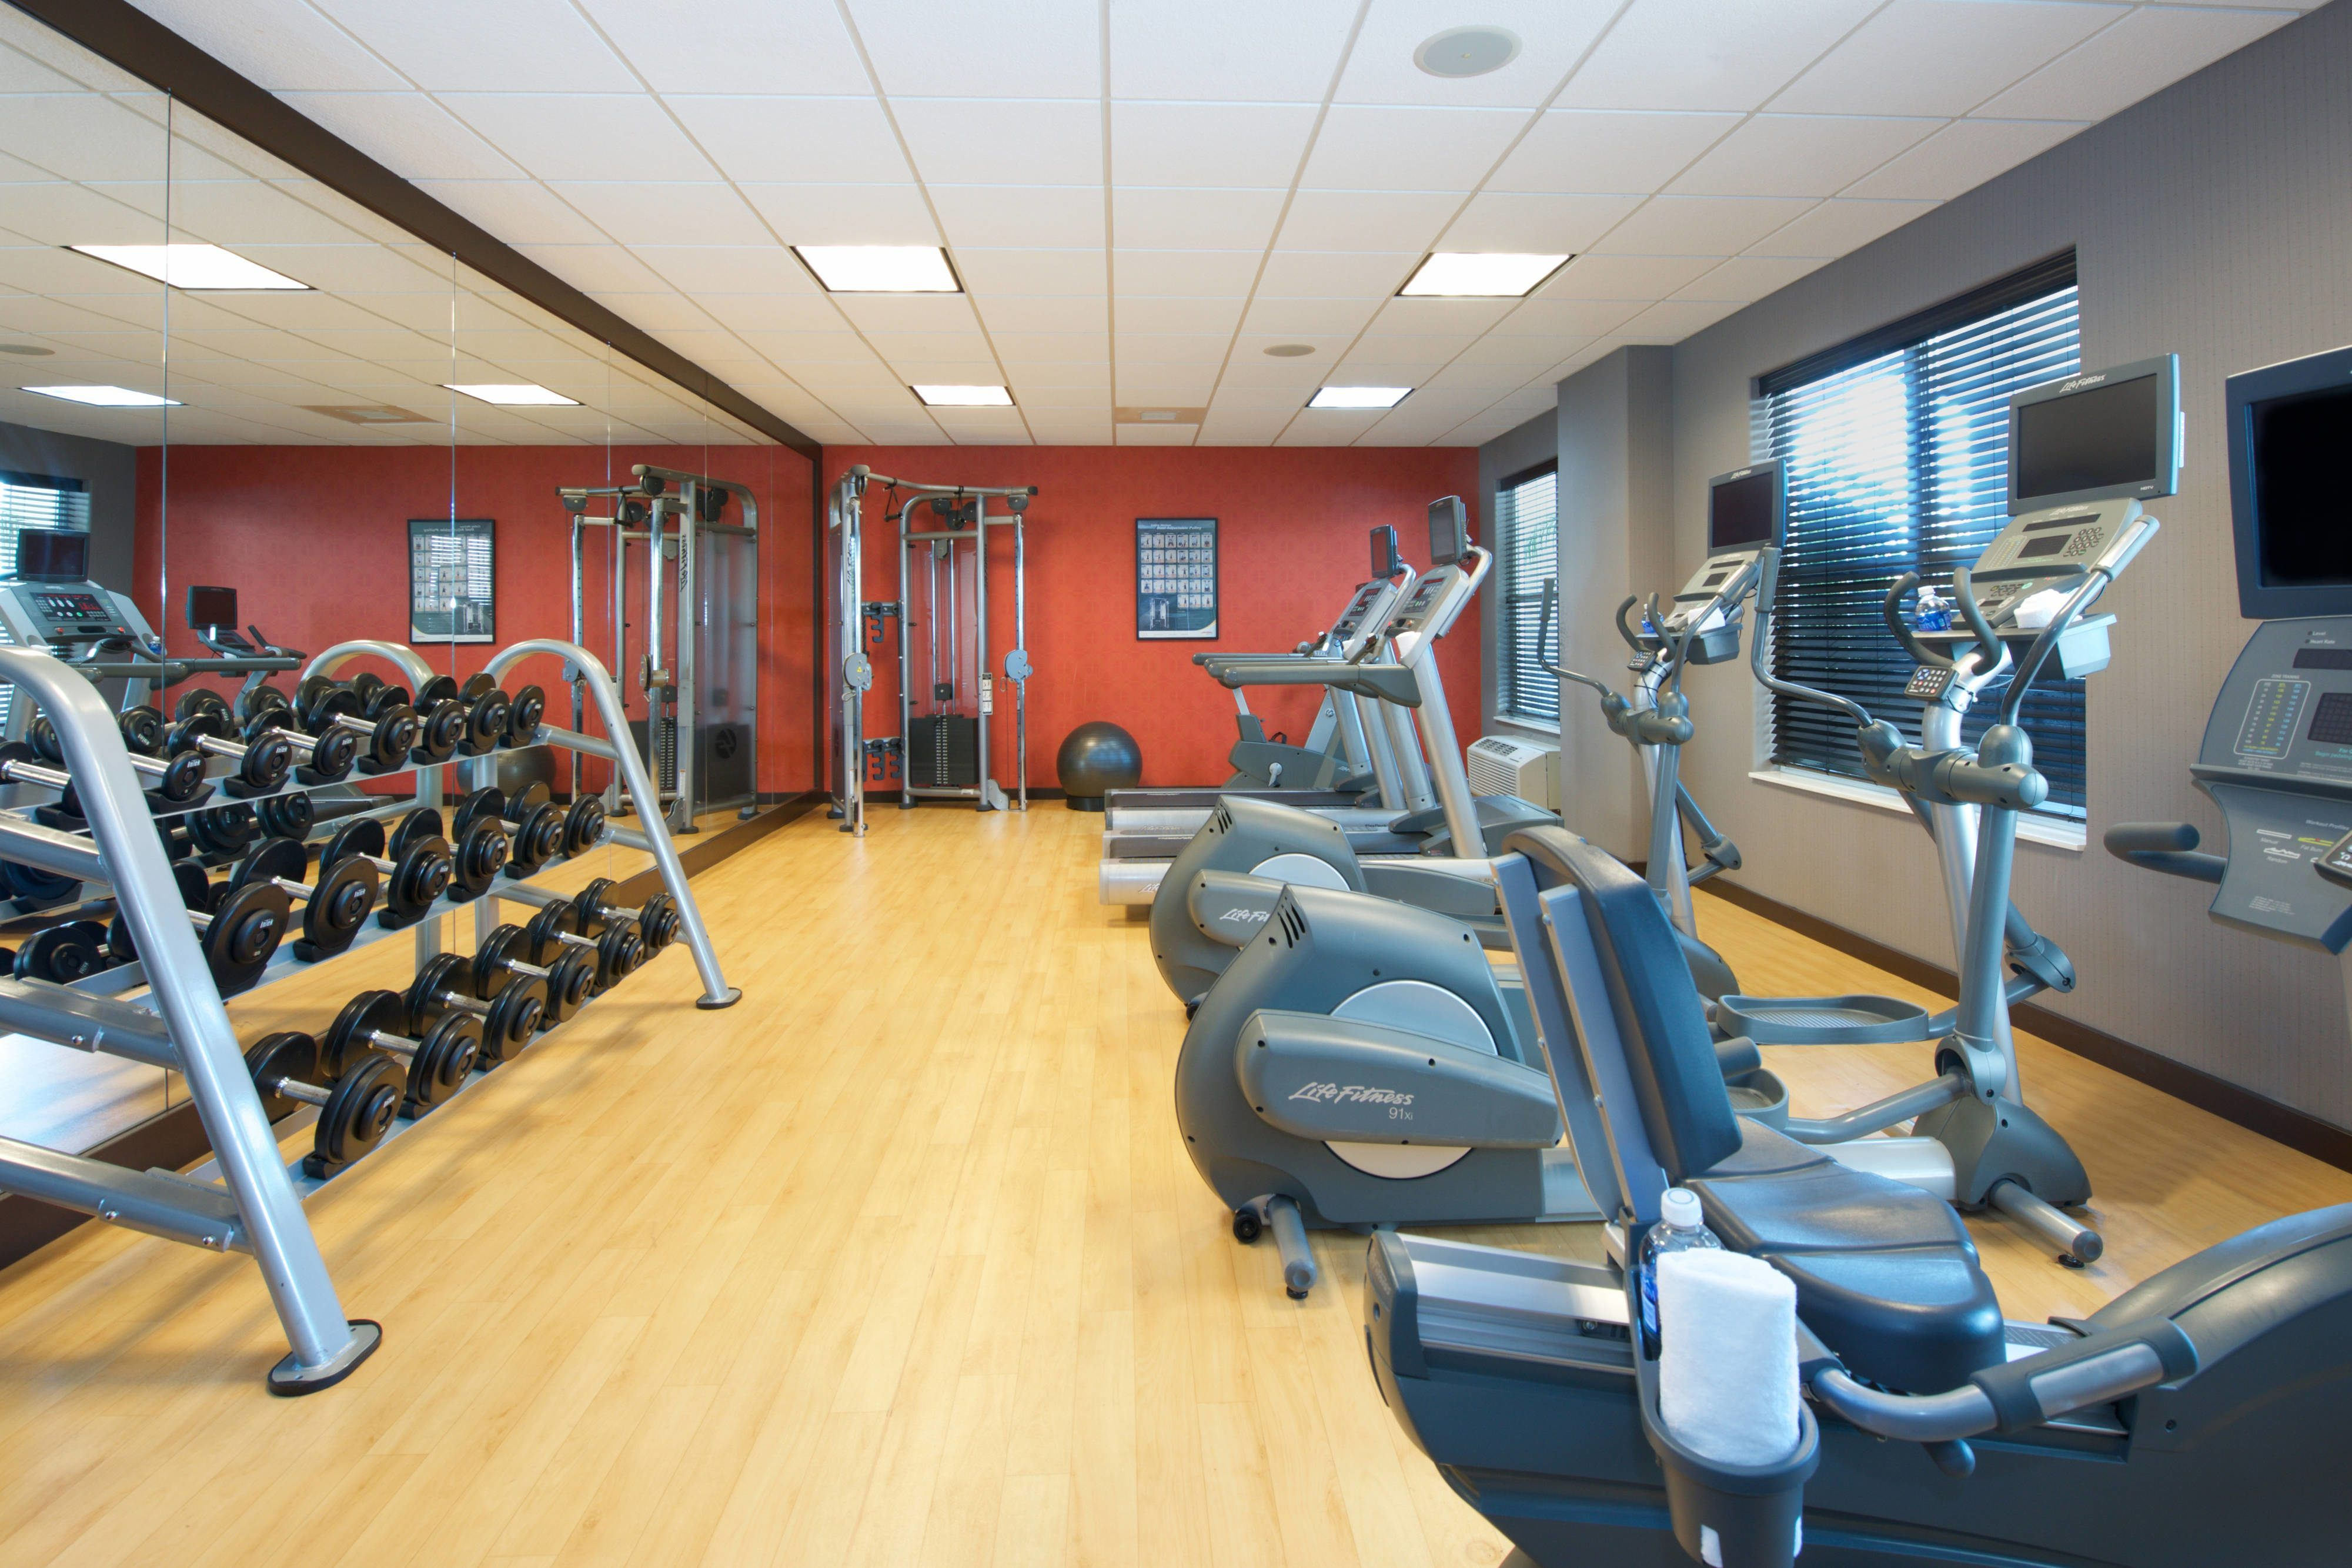 Residence Inn Newark Silicon Valley Fitness Center Suite Relax Holiday Valley Hotel Residences California Hotel